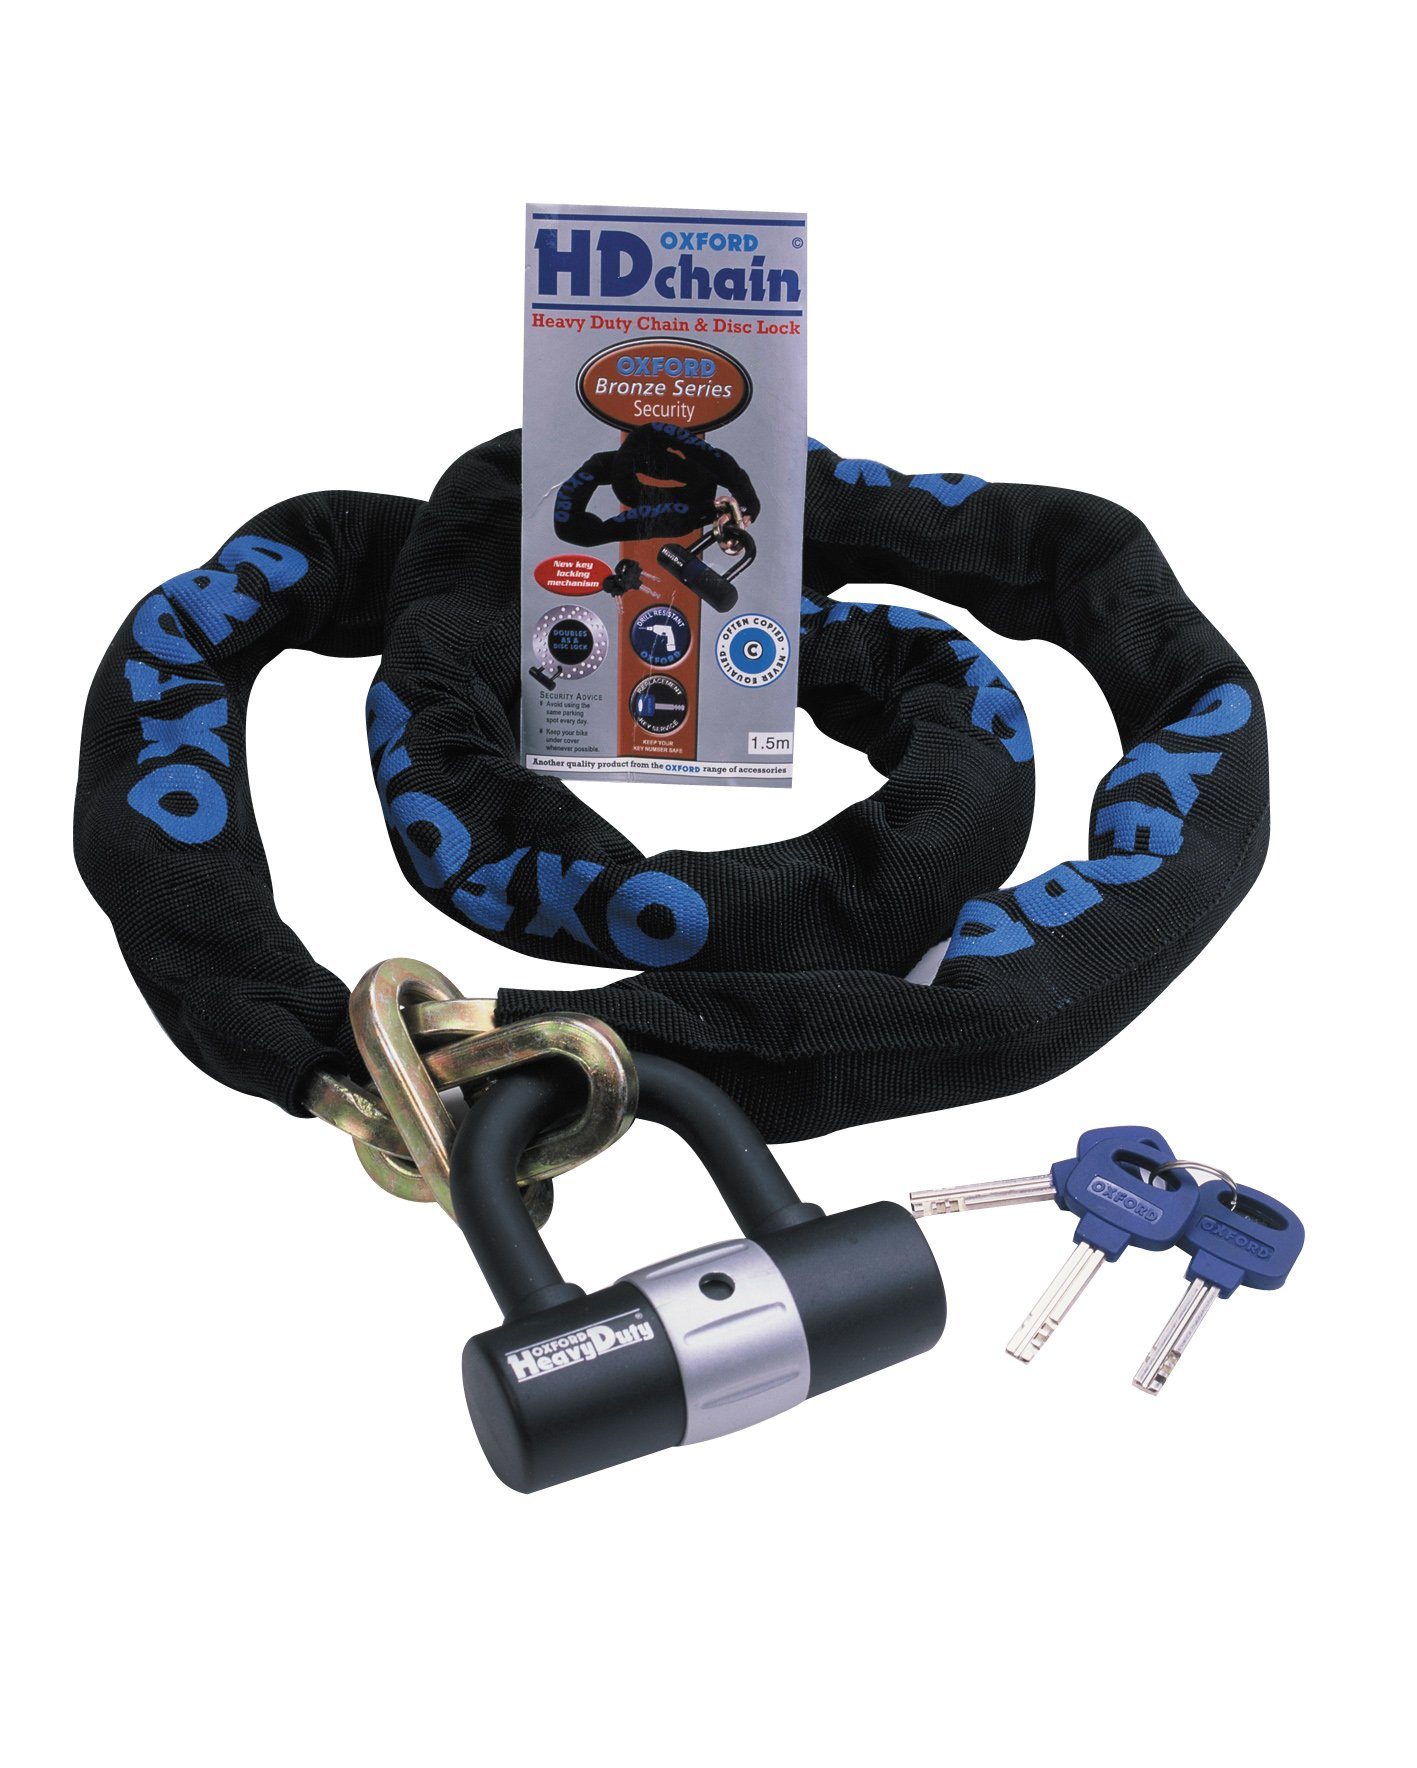 Oxford OF160 'HD Chain' 9.5mm Square Link Chain and Tough Double Locking Padlock